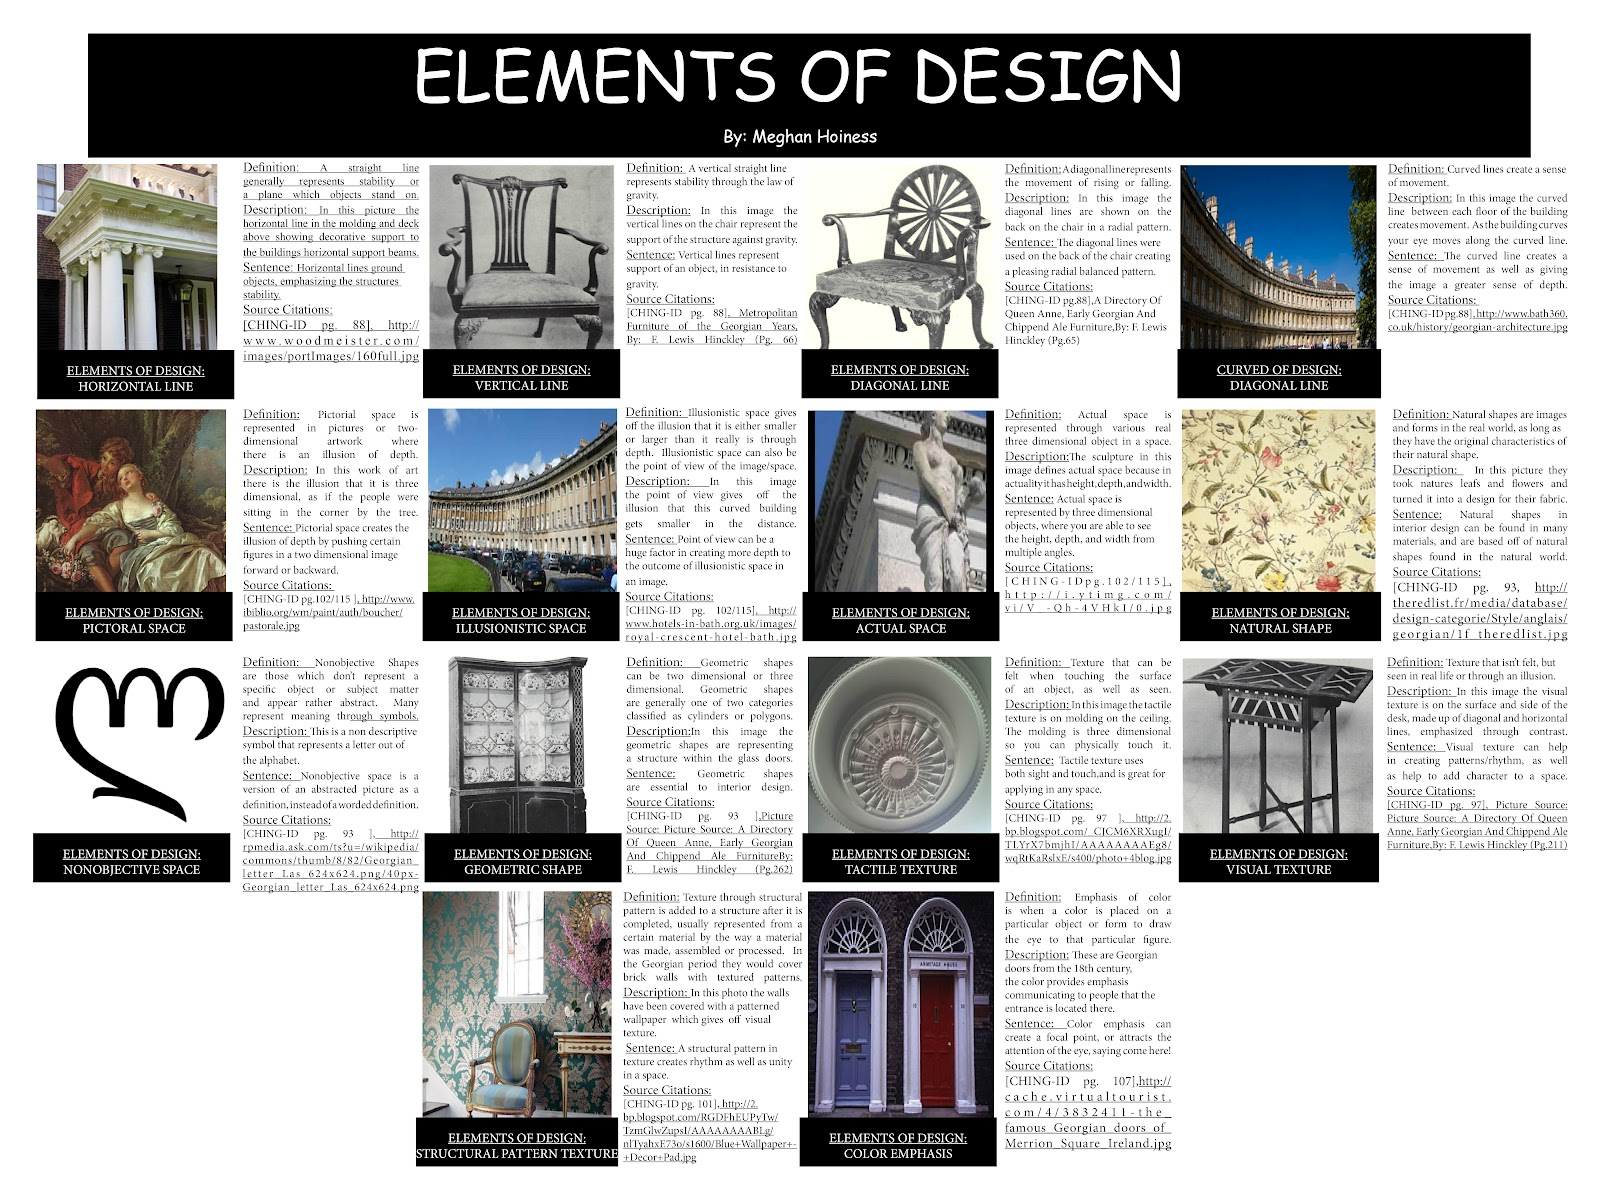 Elements By Design : Meghan s interior design elements principles of desgin